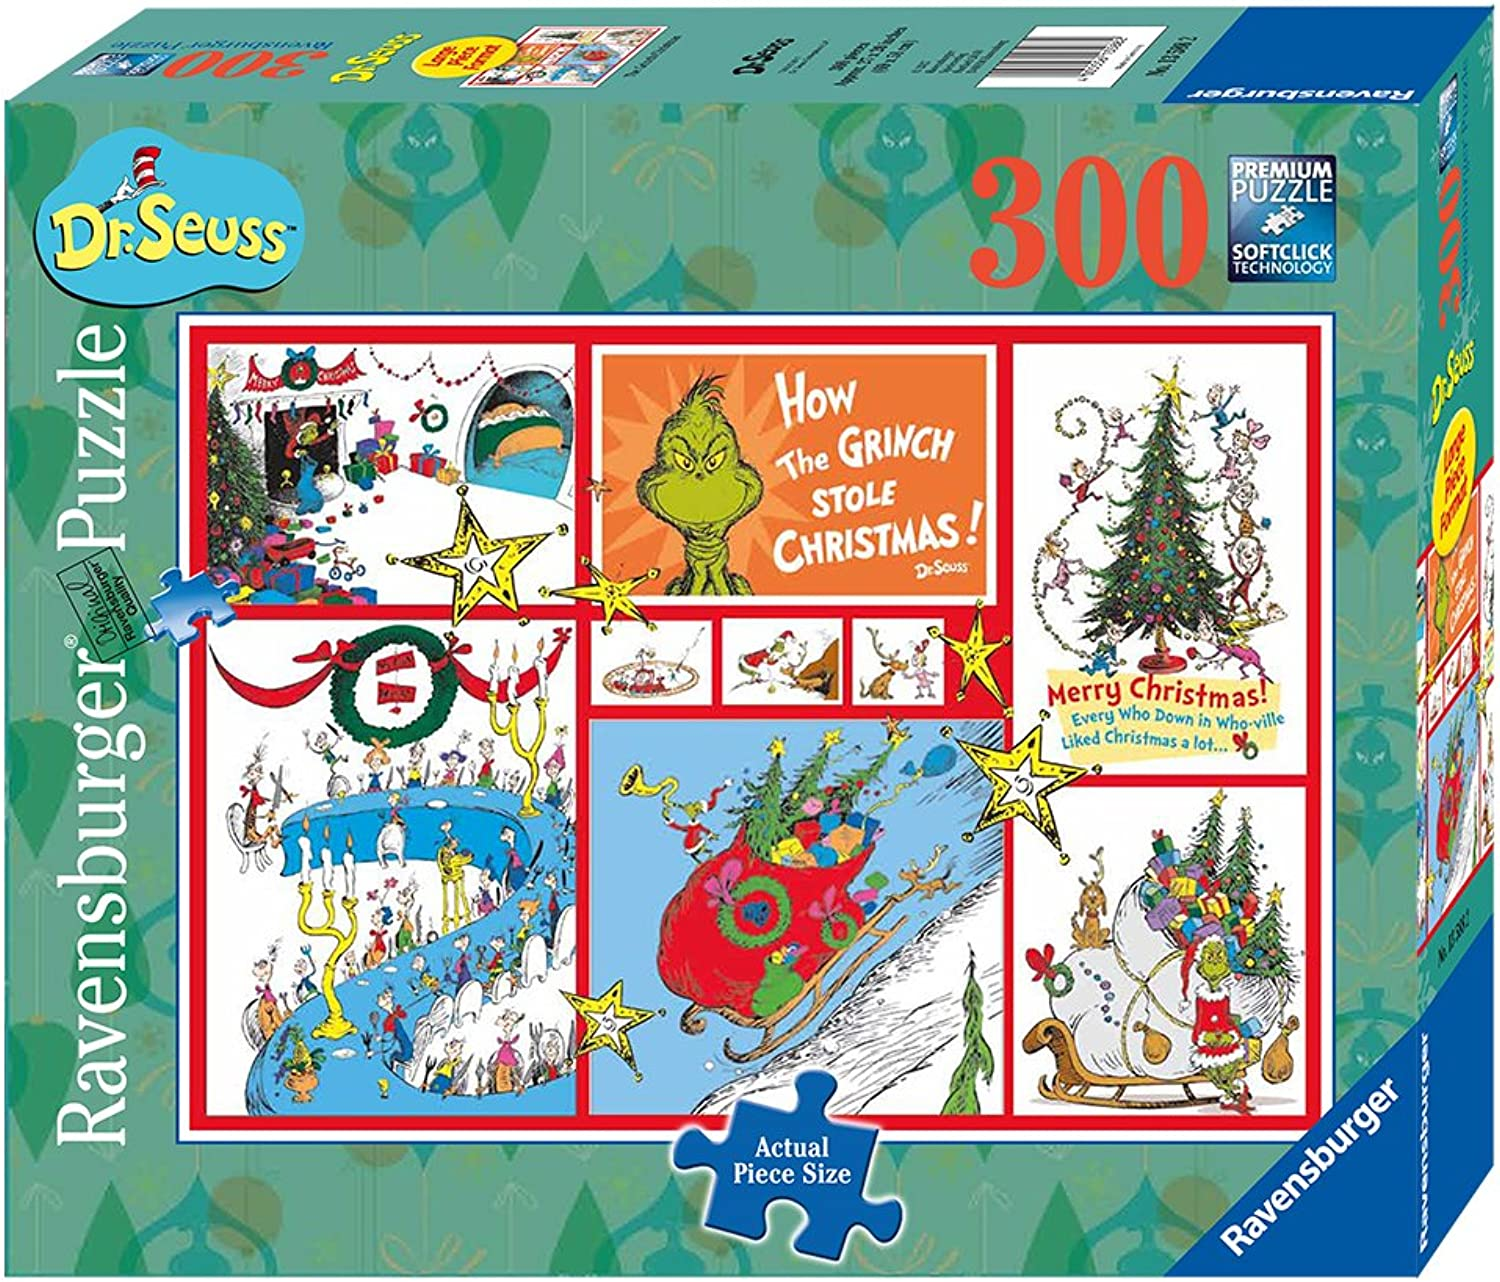 Ravensburger The Grinch Christmas Large Format Puzzle 20  x 27  300 Piece Jigsaw Puzzle for Kids   Every Piece is Unique, Pieces Fit Together Perfectly